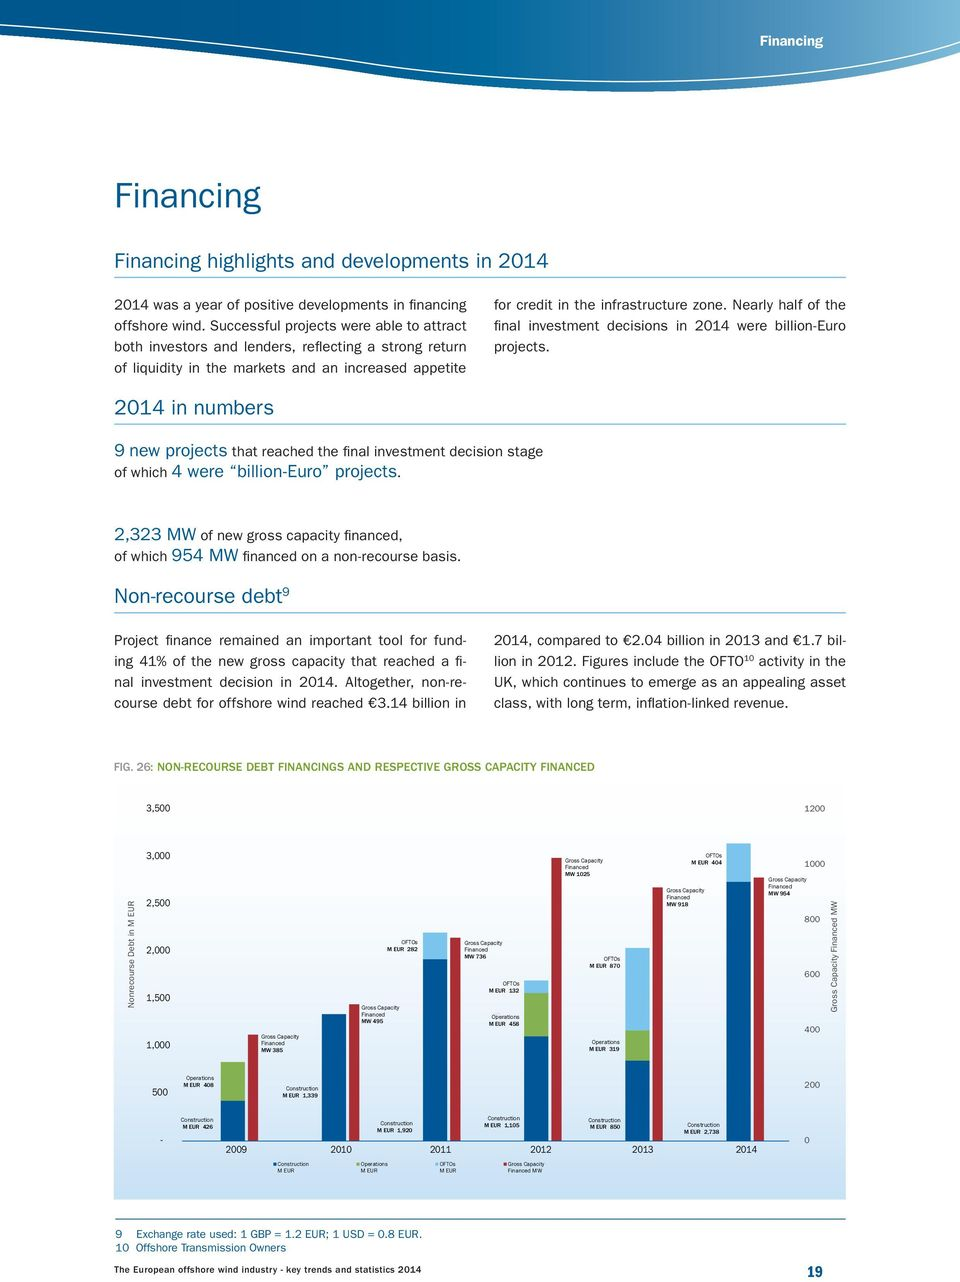 Nearly half of the final investment decisions in 2014 were billion-euro projects. 2014 in numbers 9 new projects that reached the final investment decision stage of which 4 were billion-euro projects.